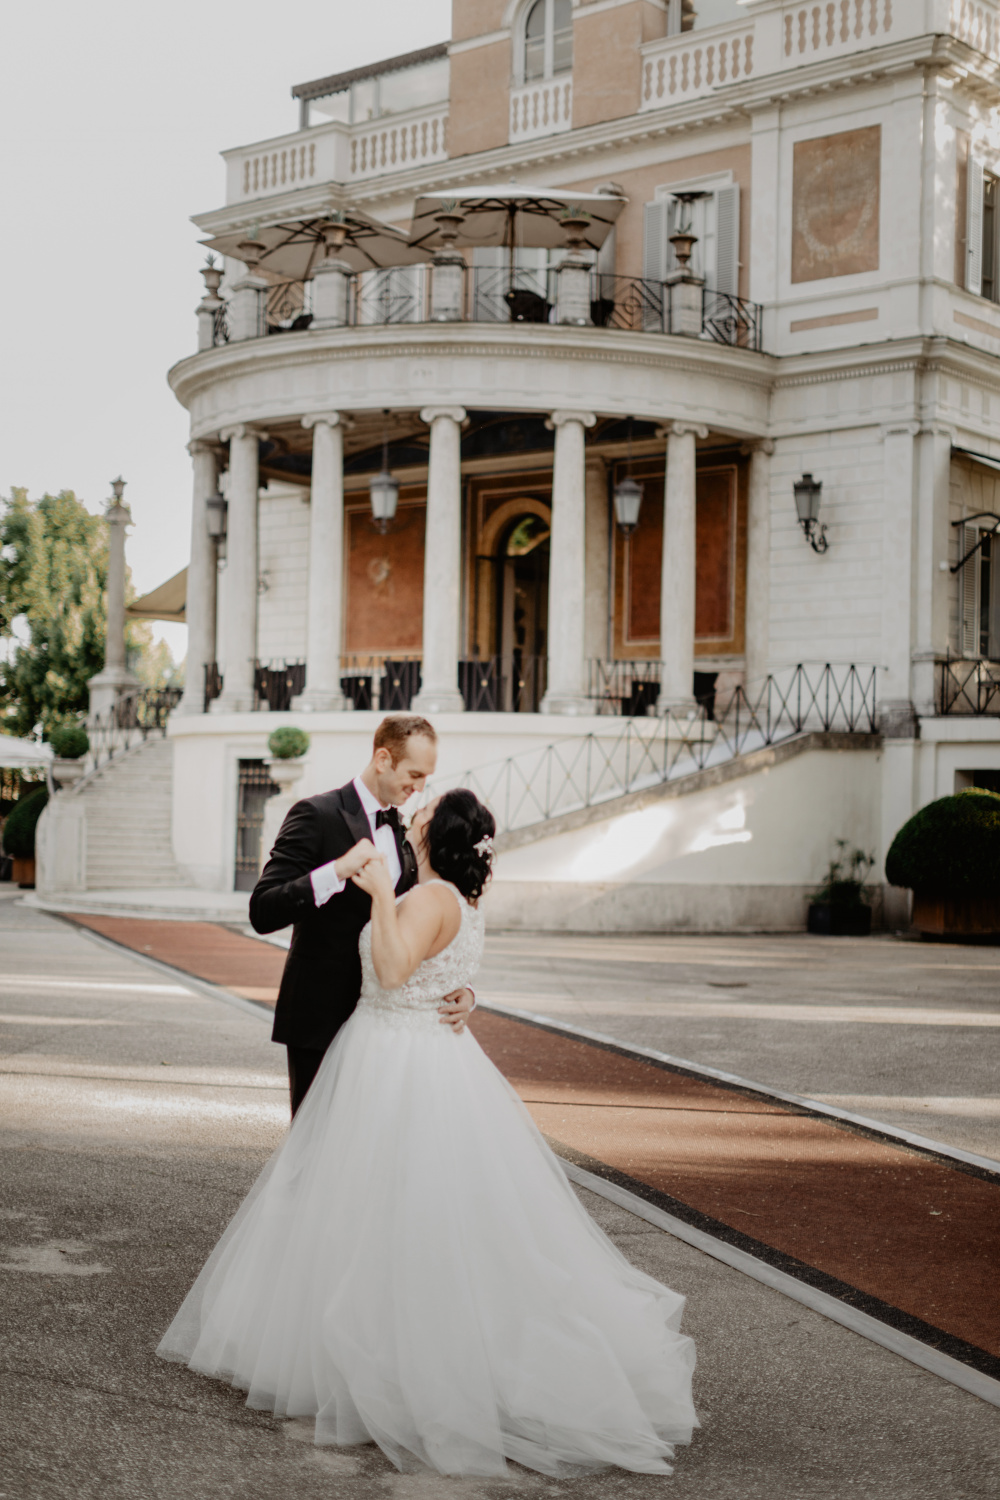 Bride and groom in front of the Venue Wedding Rome